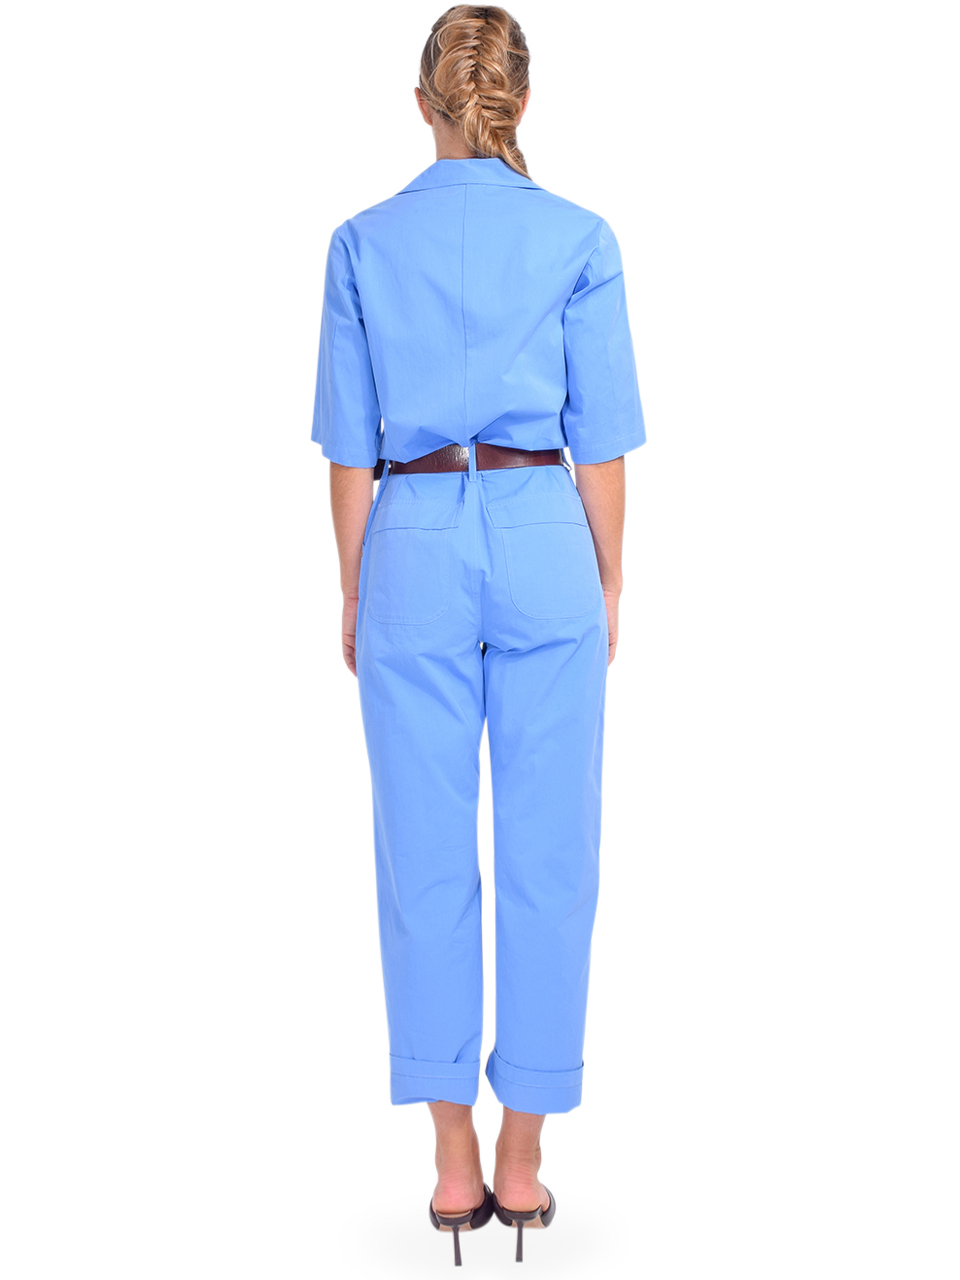 Ottod'Ame Cotton Jumpsuit in Blue Back View